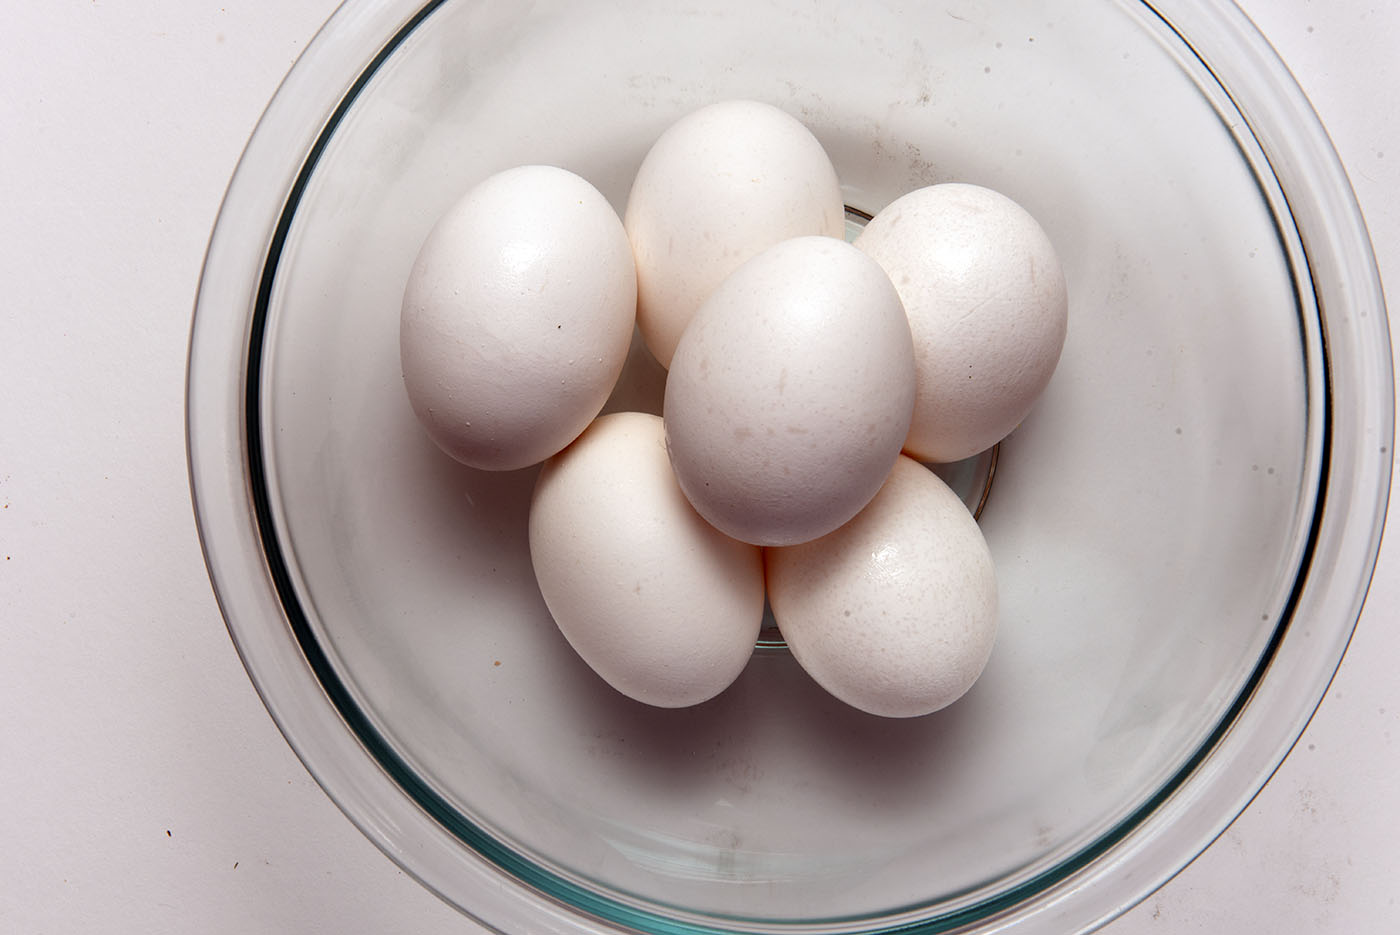 A clear glass bowl holding six boiled eggs.